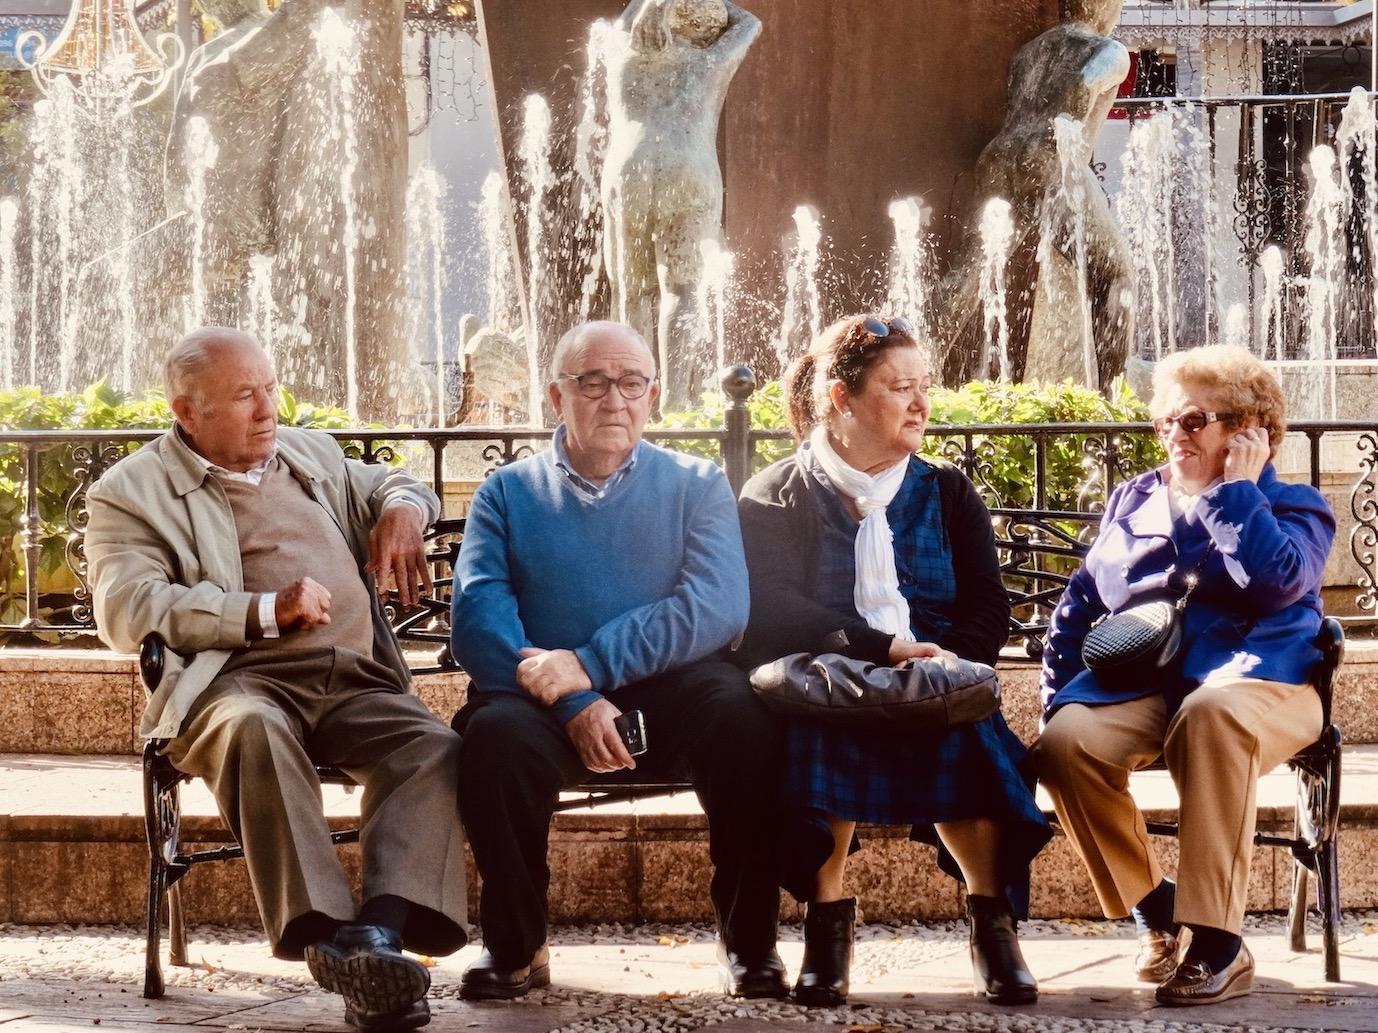 Old people Plaza de la Constitucion Fuengirola